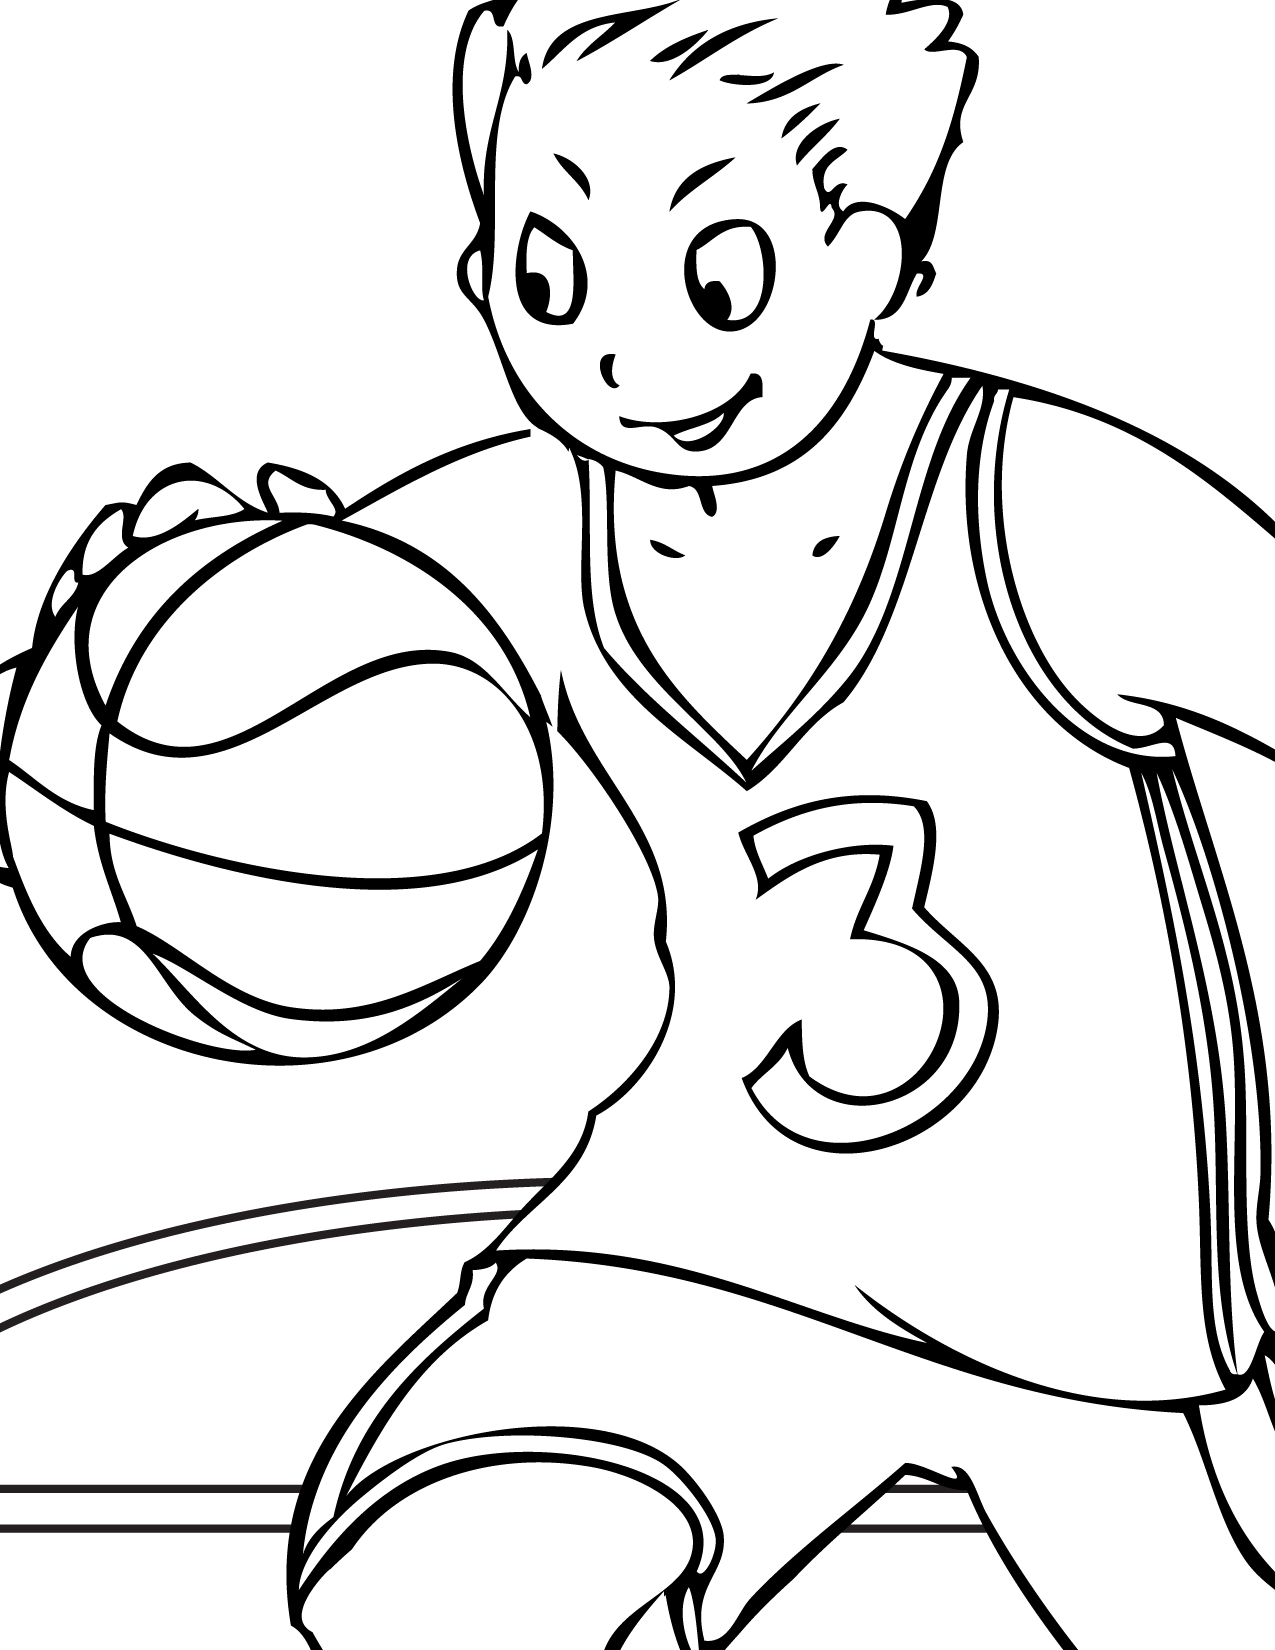 12 Coloring Pictures Basketball